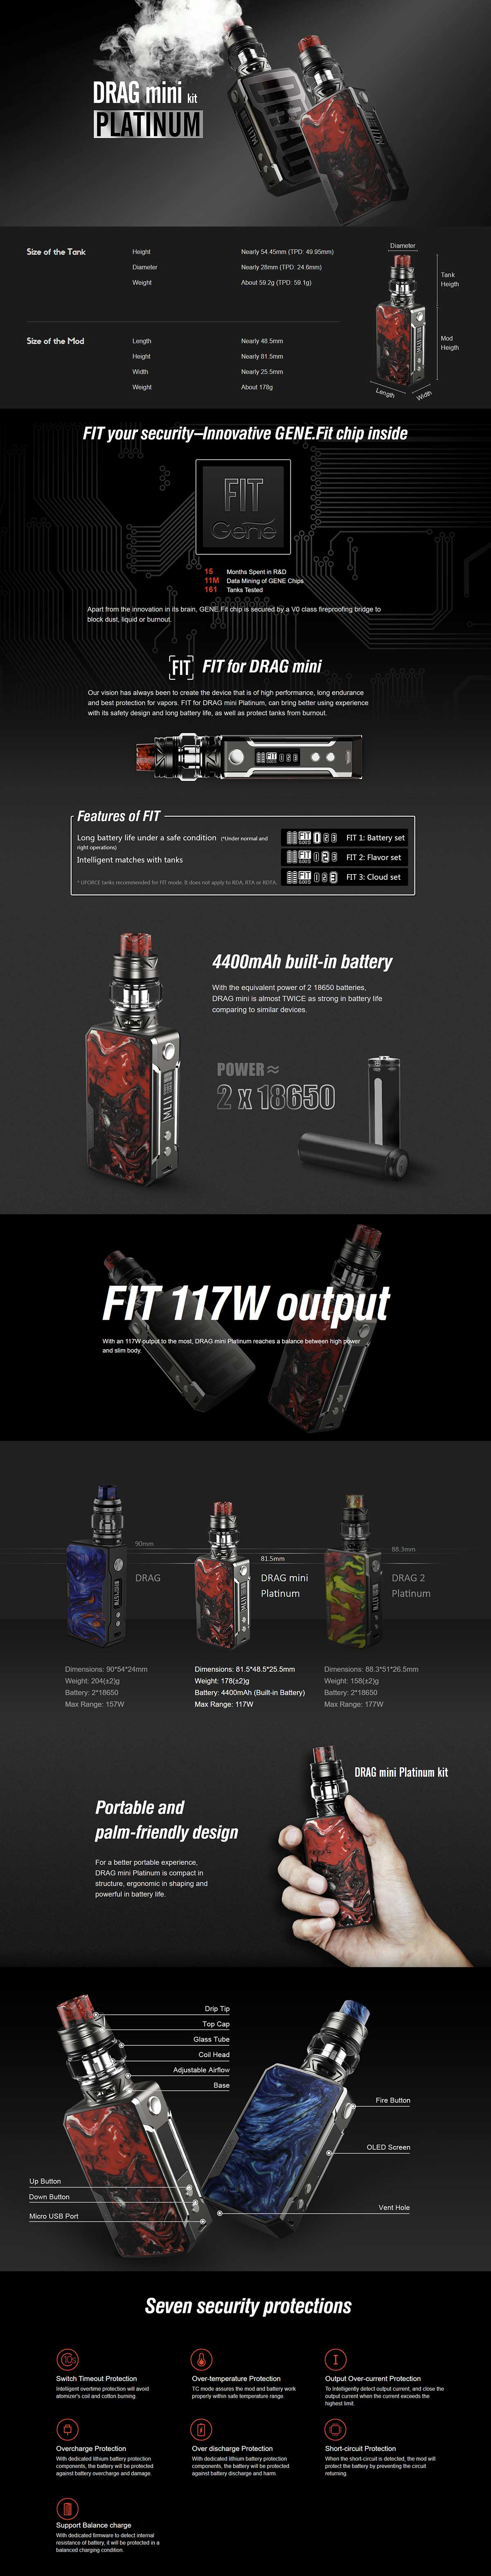 Voopoo Drag Mini Platinum Kit. Características